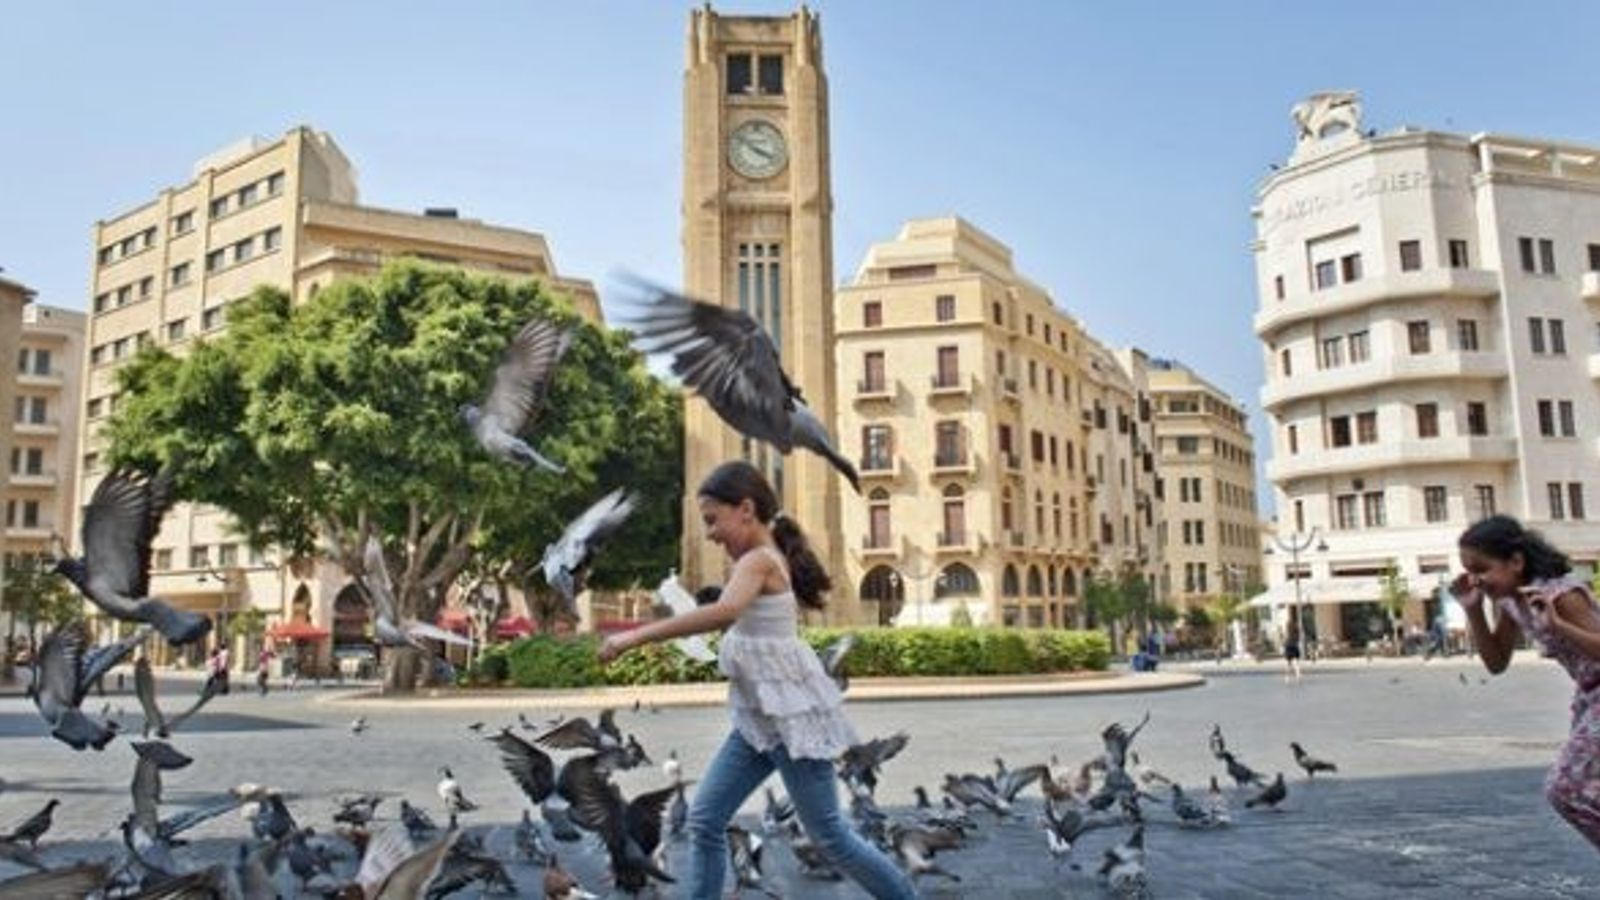 Girl chases pigeons in a square, Beirut